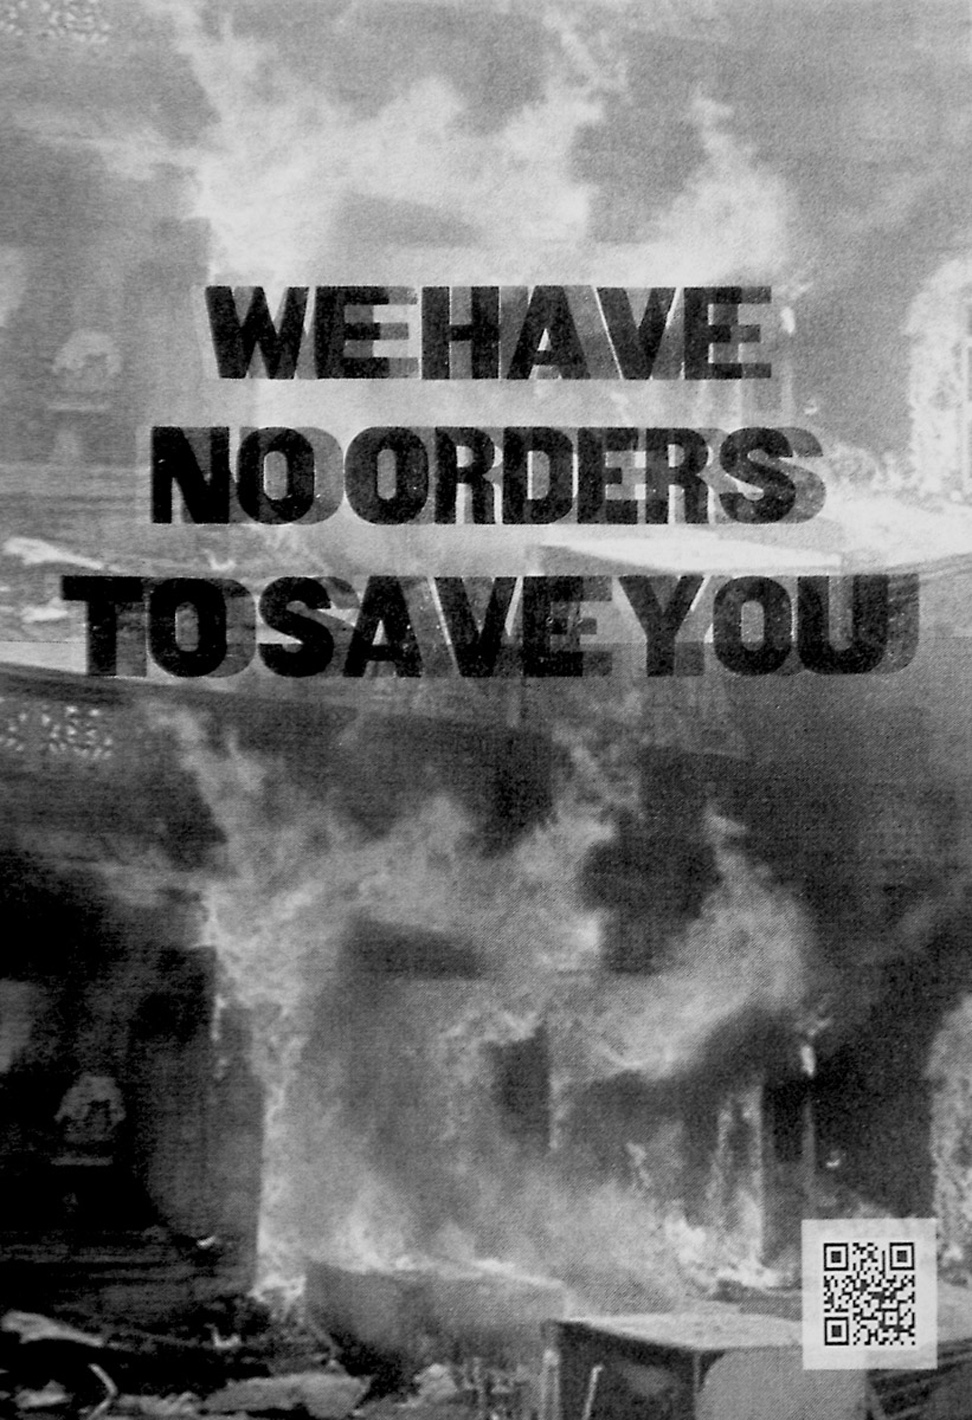 We have no orders to save you